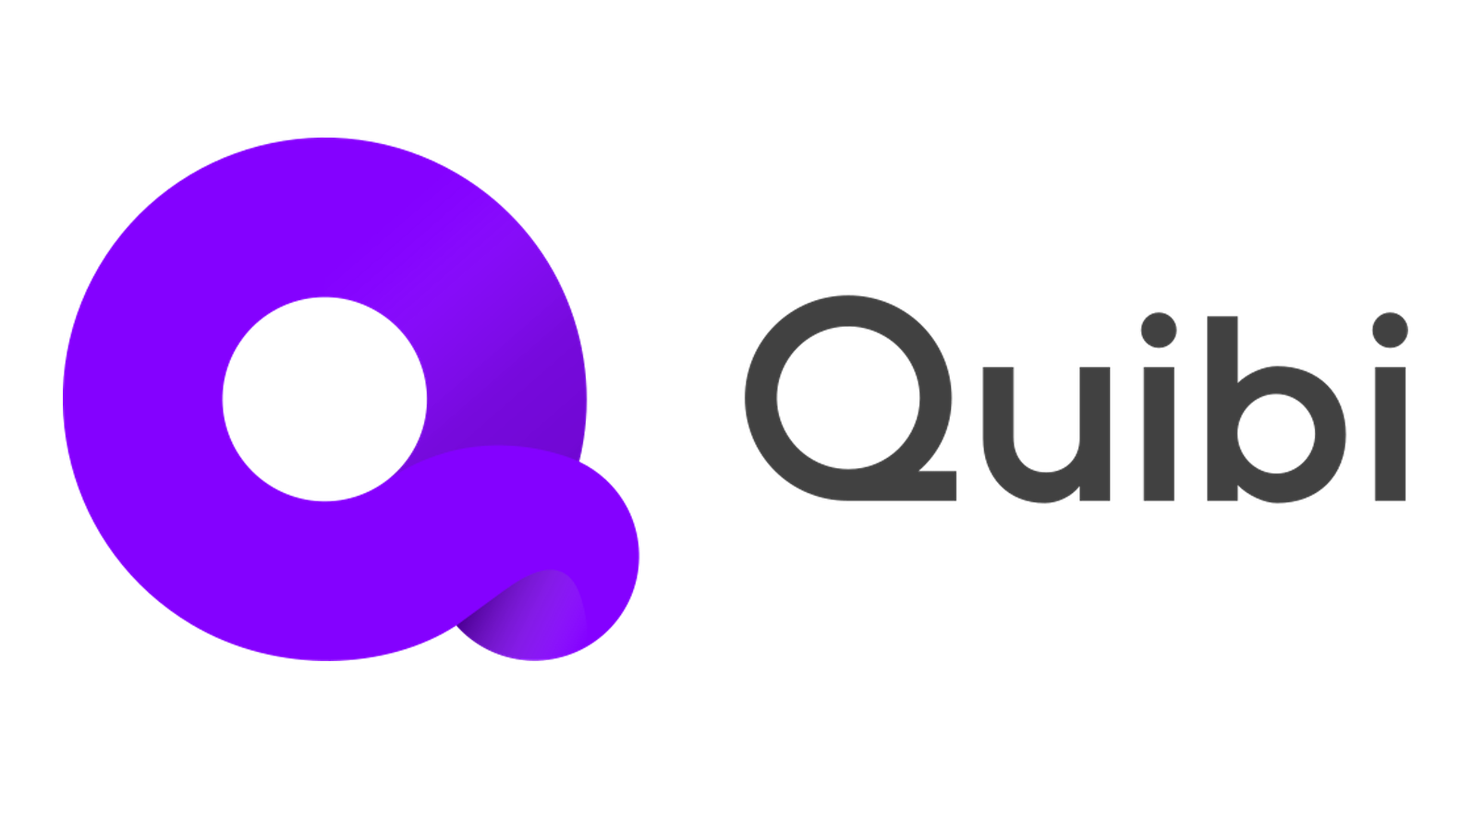 Jeffrey Katzenberg announced Quibi is going out of business by the end of this year.